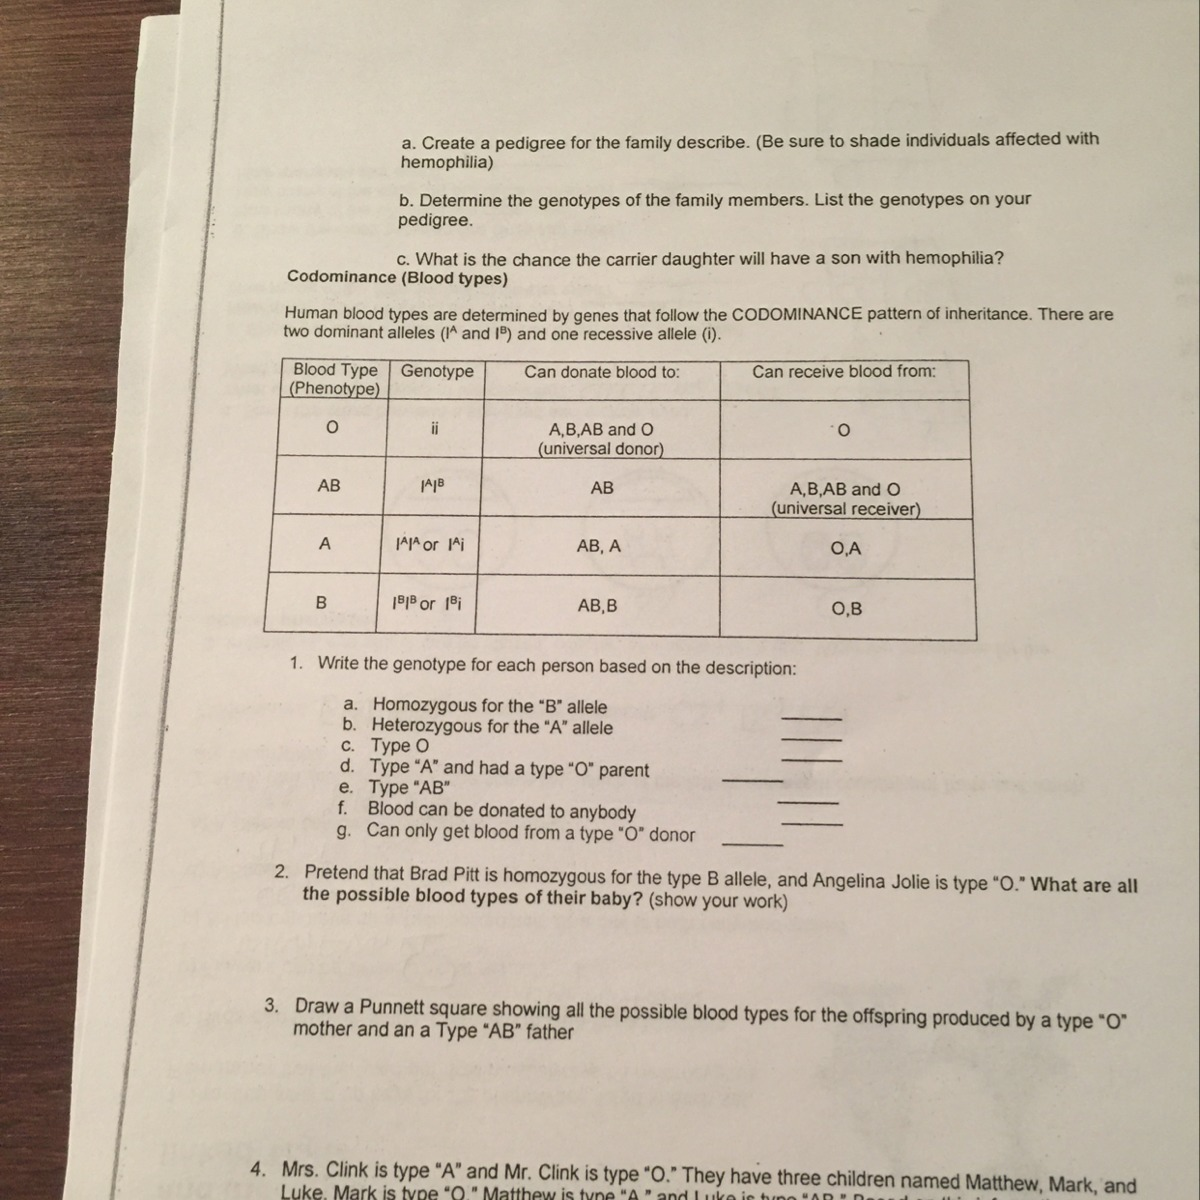 How Do I Find The Homozygous For The B Allele